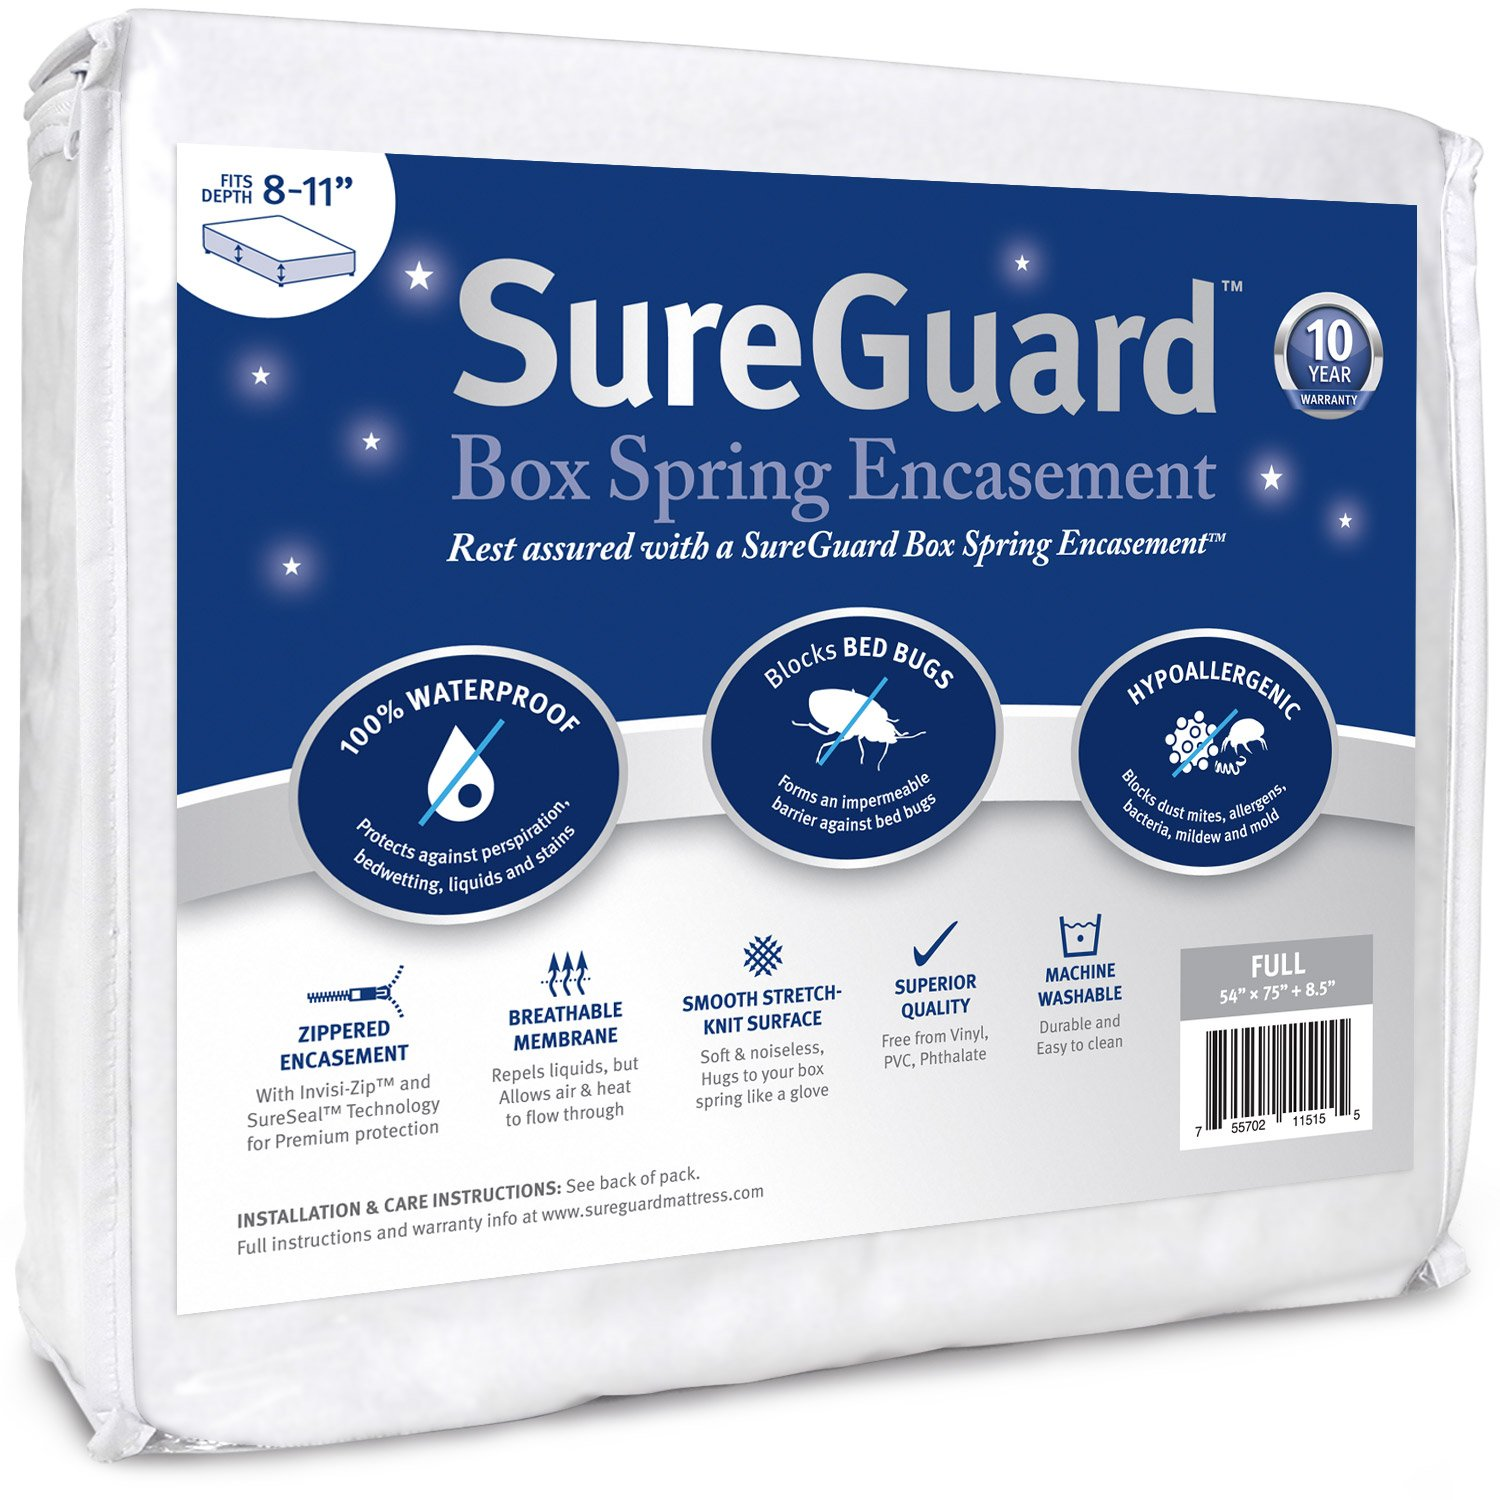 Full Size SureGuard Box Spring Encasement - 100% Waterproof, Bed Bug Proof, Hypoallergenic - Premium Zippered Six-Sided Cover - 10 Year Warranty by SureGuard Mattress Protectors